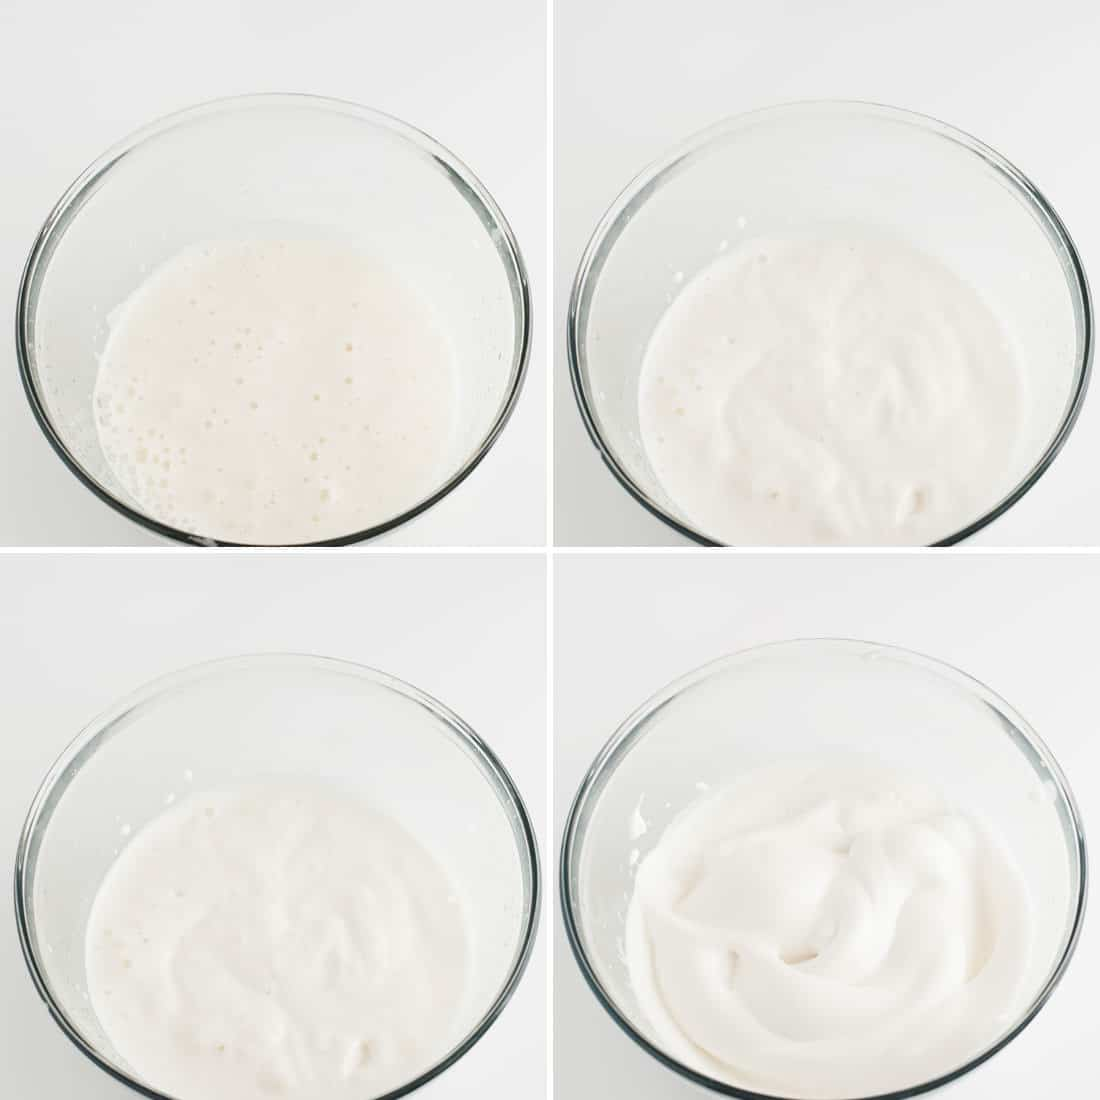 steps showing process of how to make aquafaba